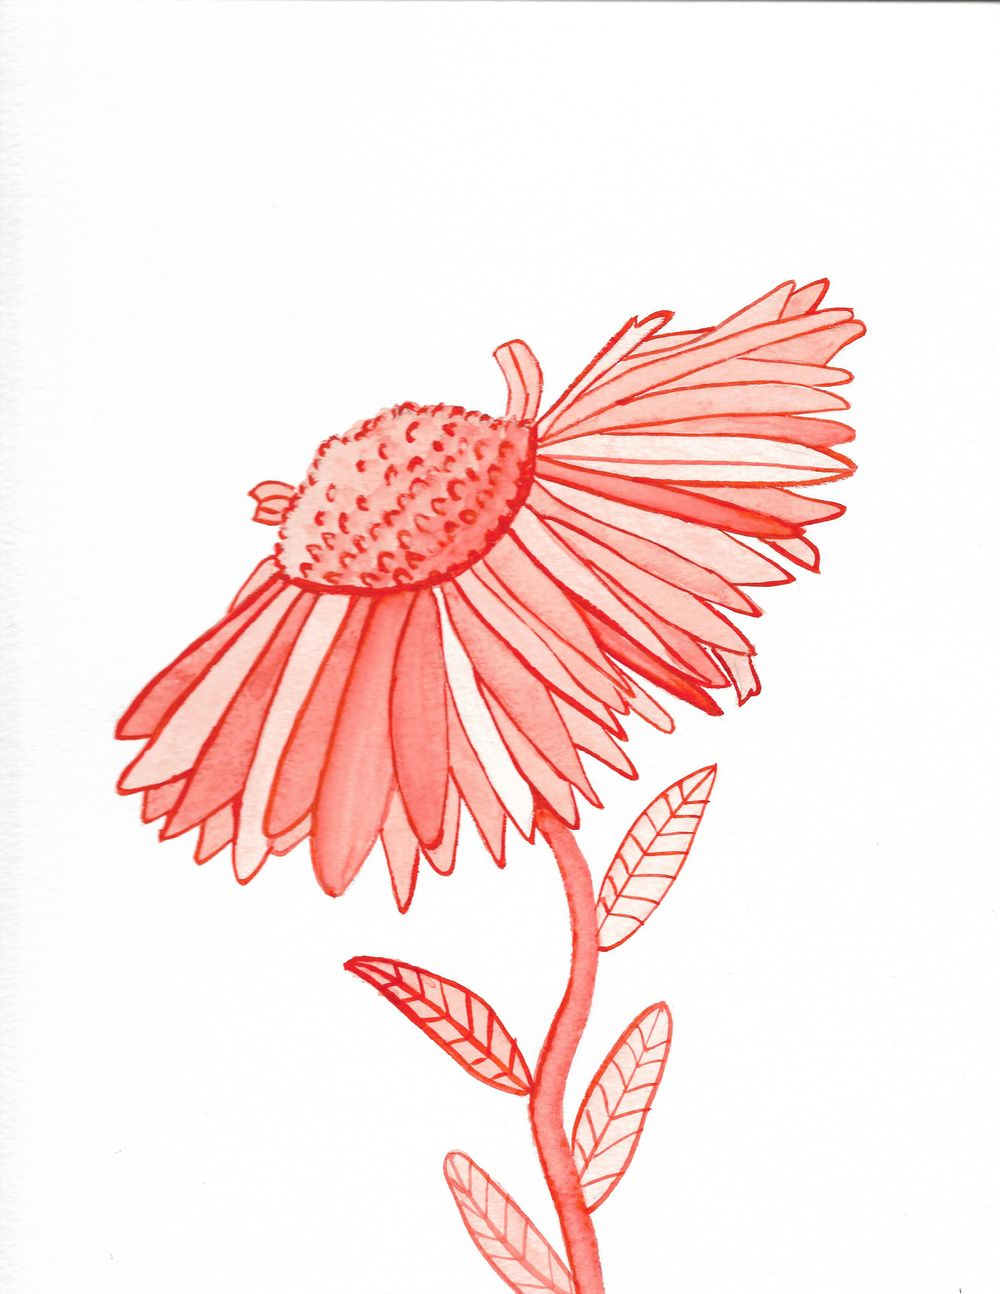 Sunflower and Jellies - image 3 - student project